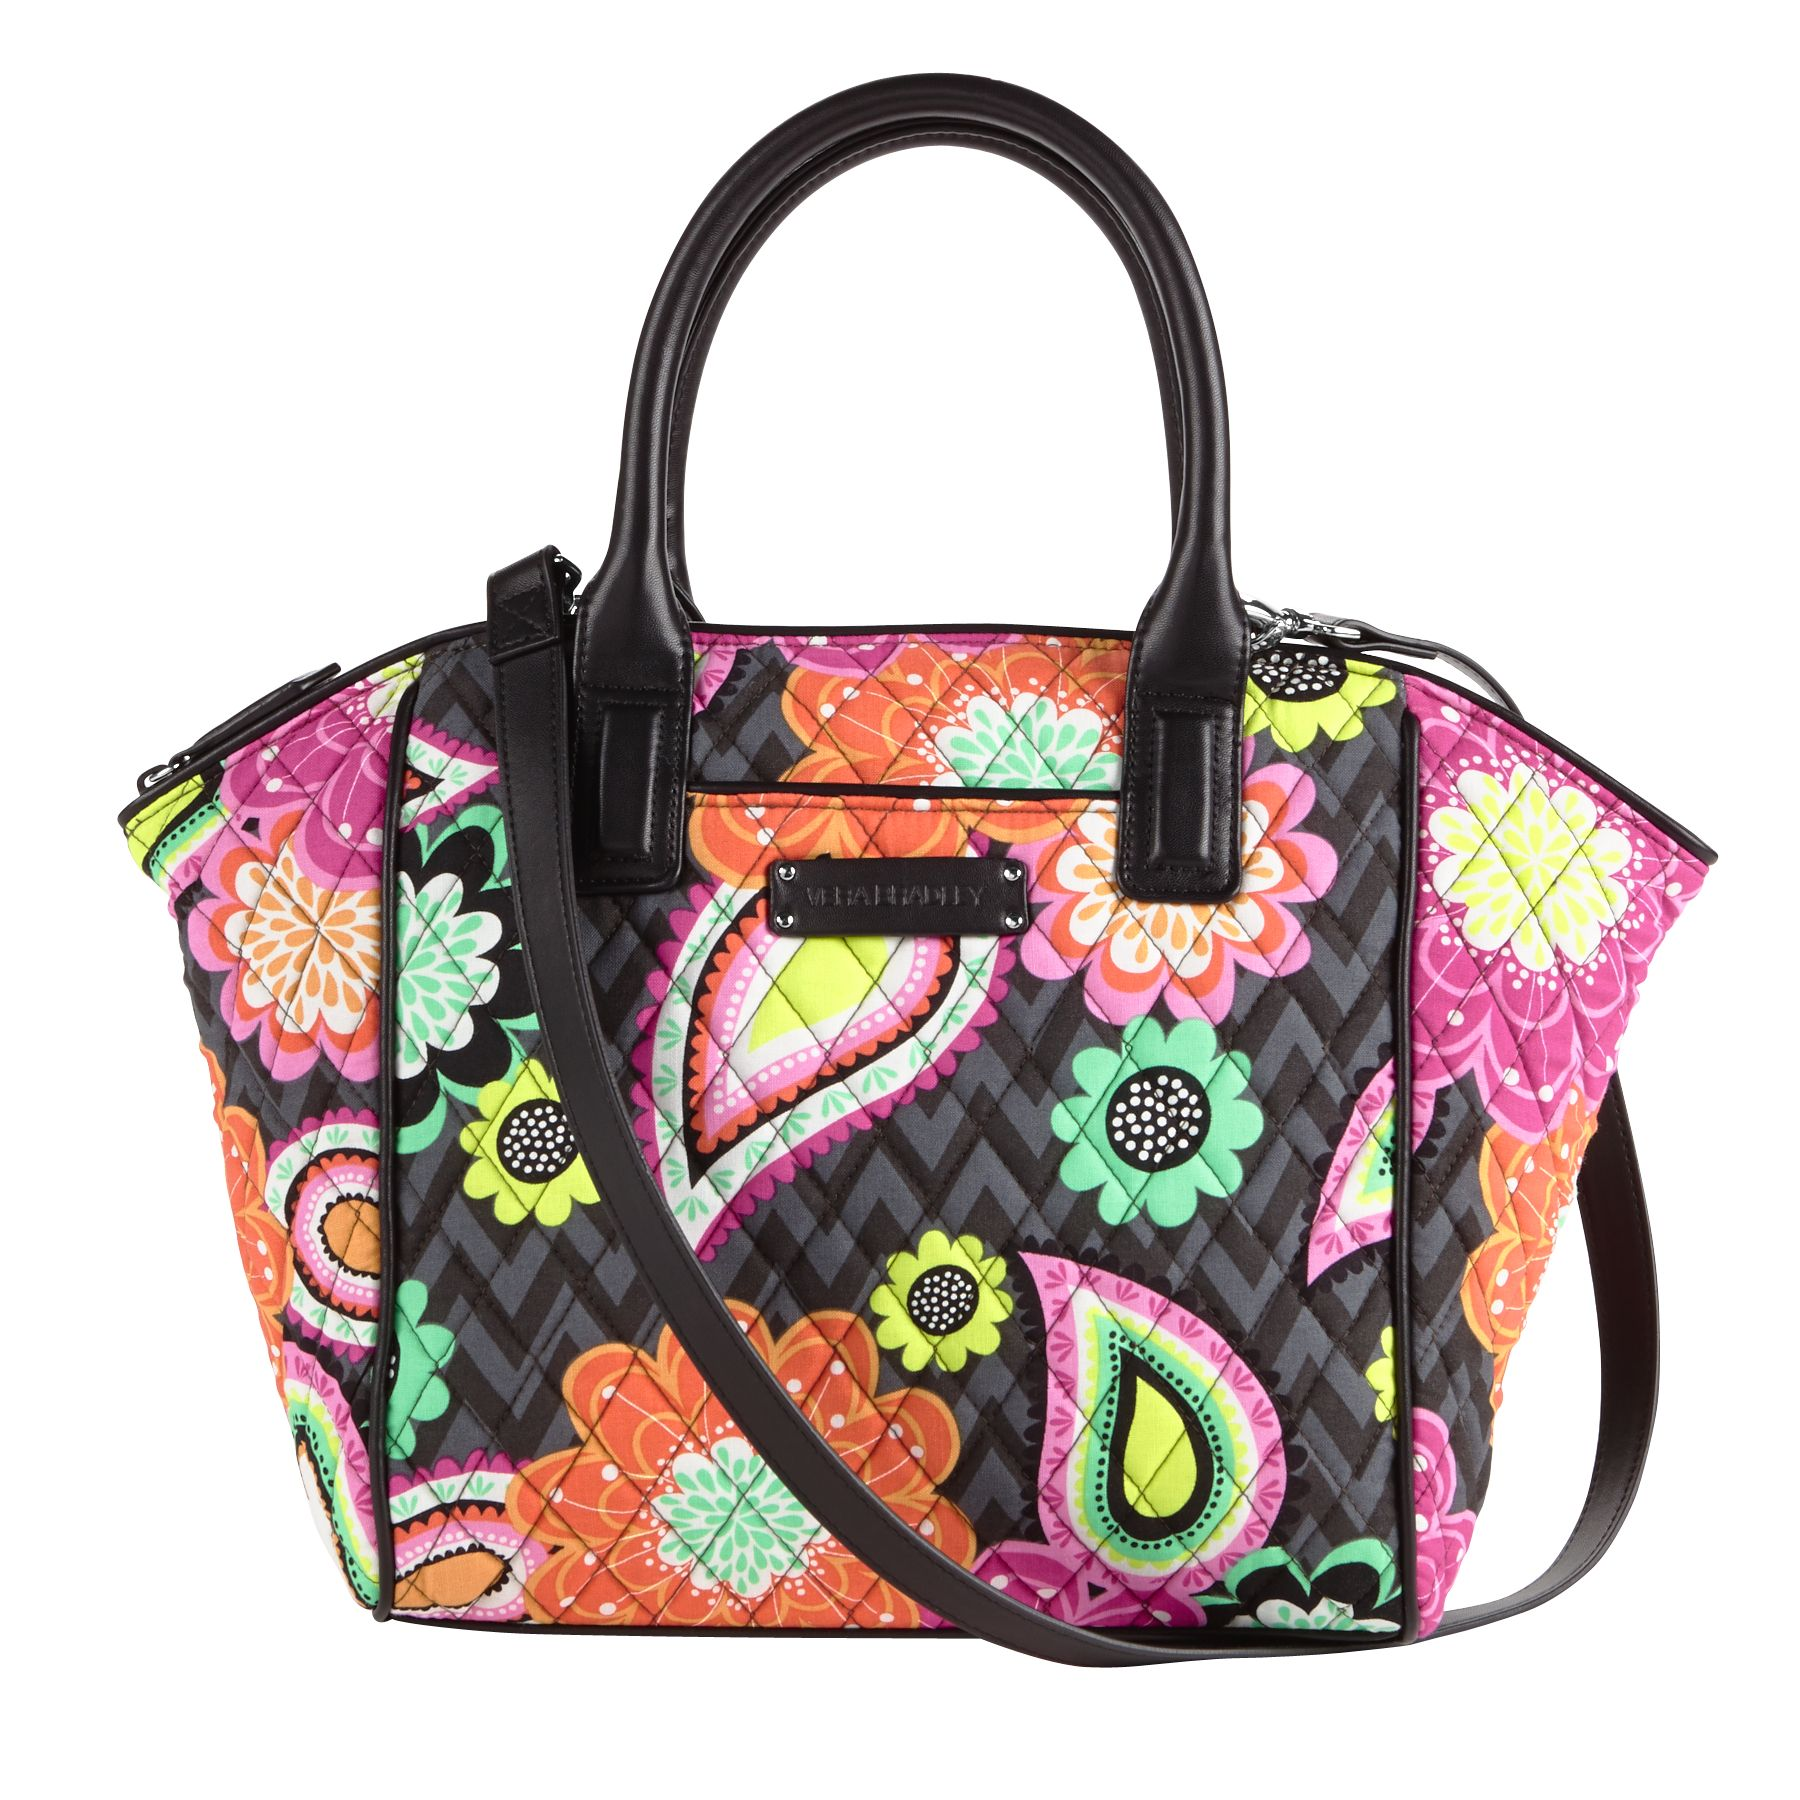 Vera Bradley Trimmed Satchel in Ziggy Zinnia with Black Trim